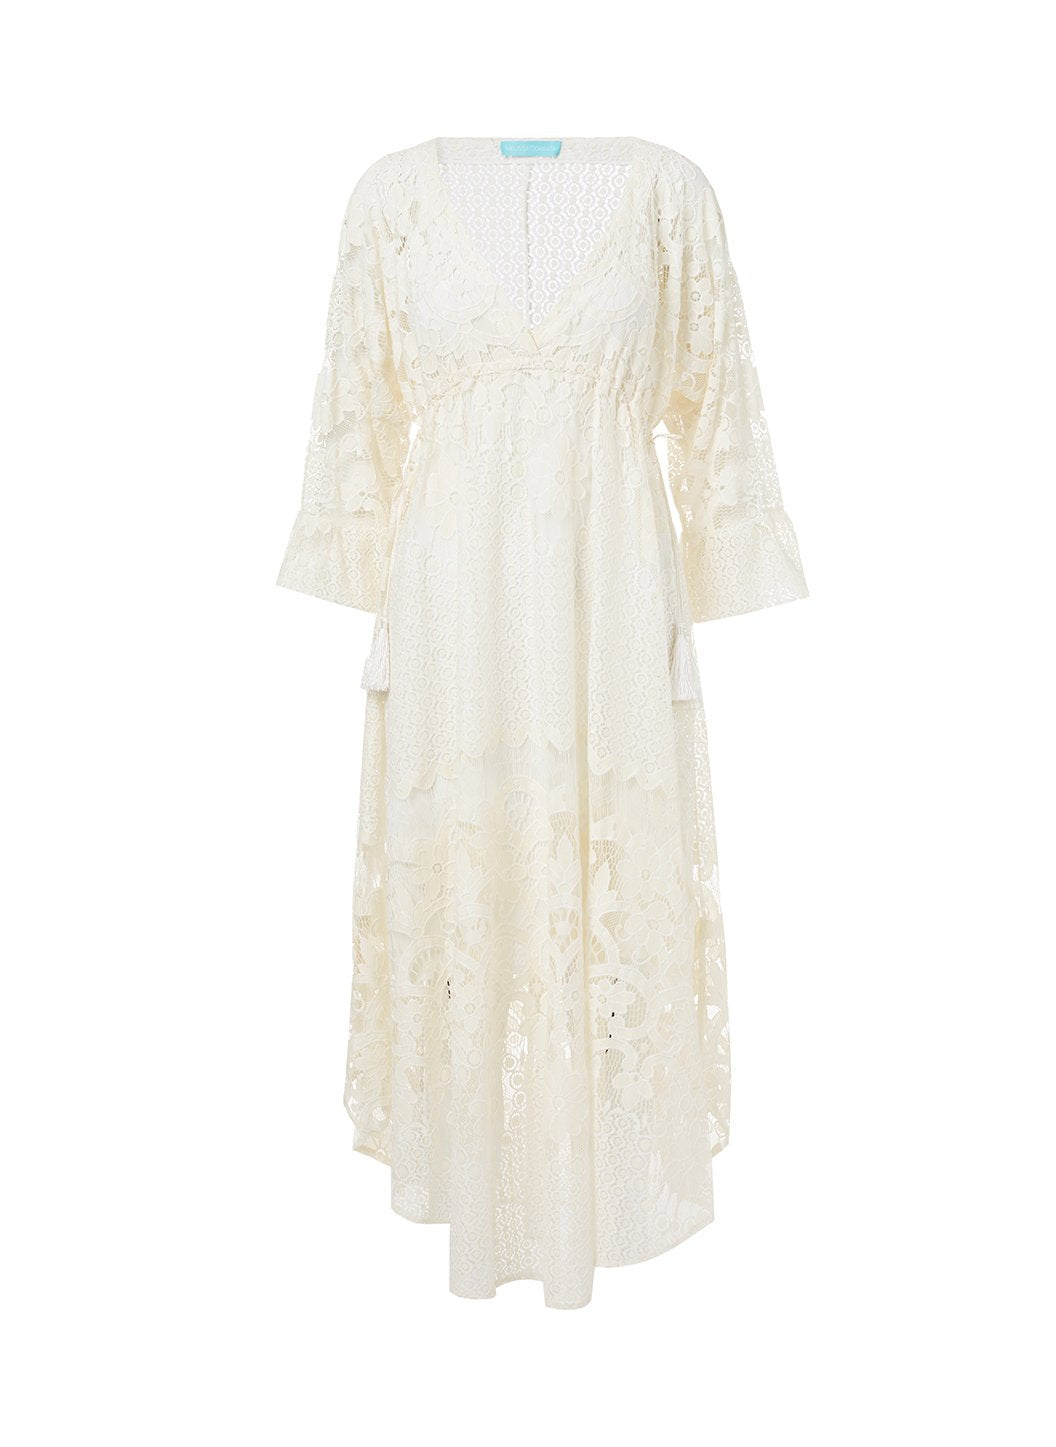 melissa cream lace tieside midi dress 2019